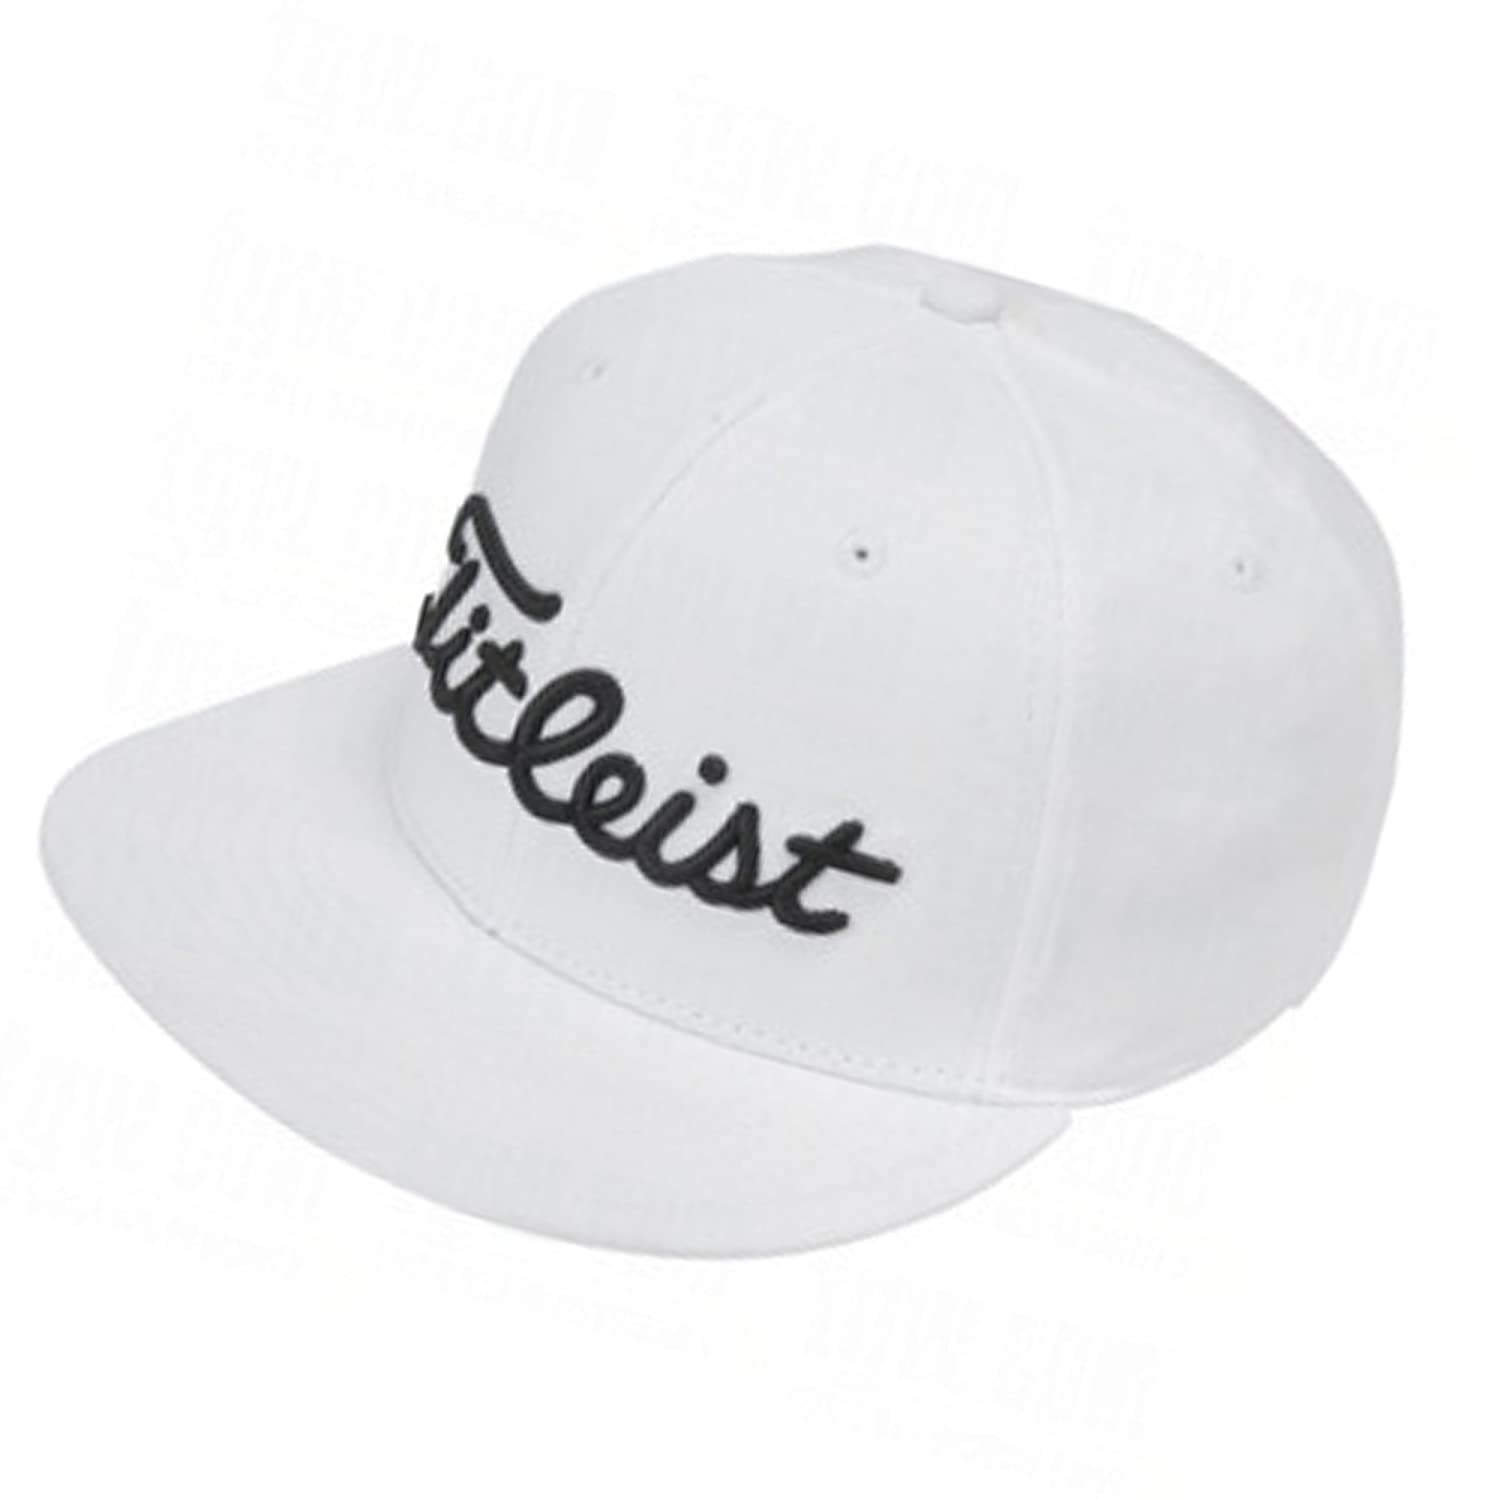 0ad1f96c9af ... usa baseball caps clothing amazon new 2014 titleist flat bill fitted hat  cap color white size ...